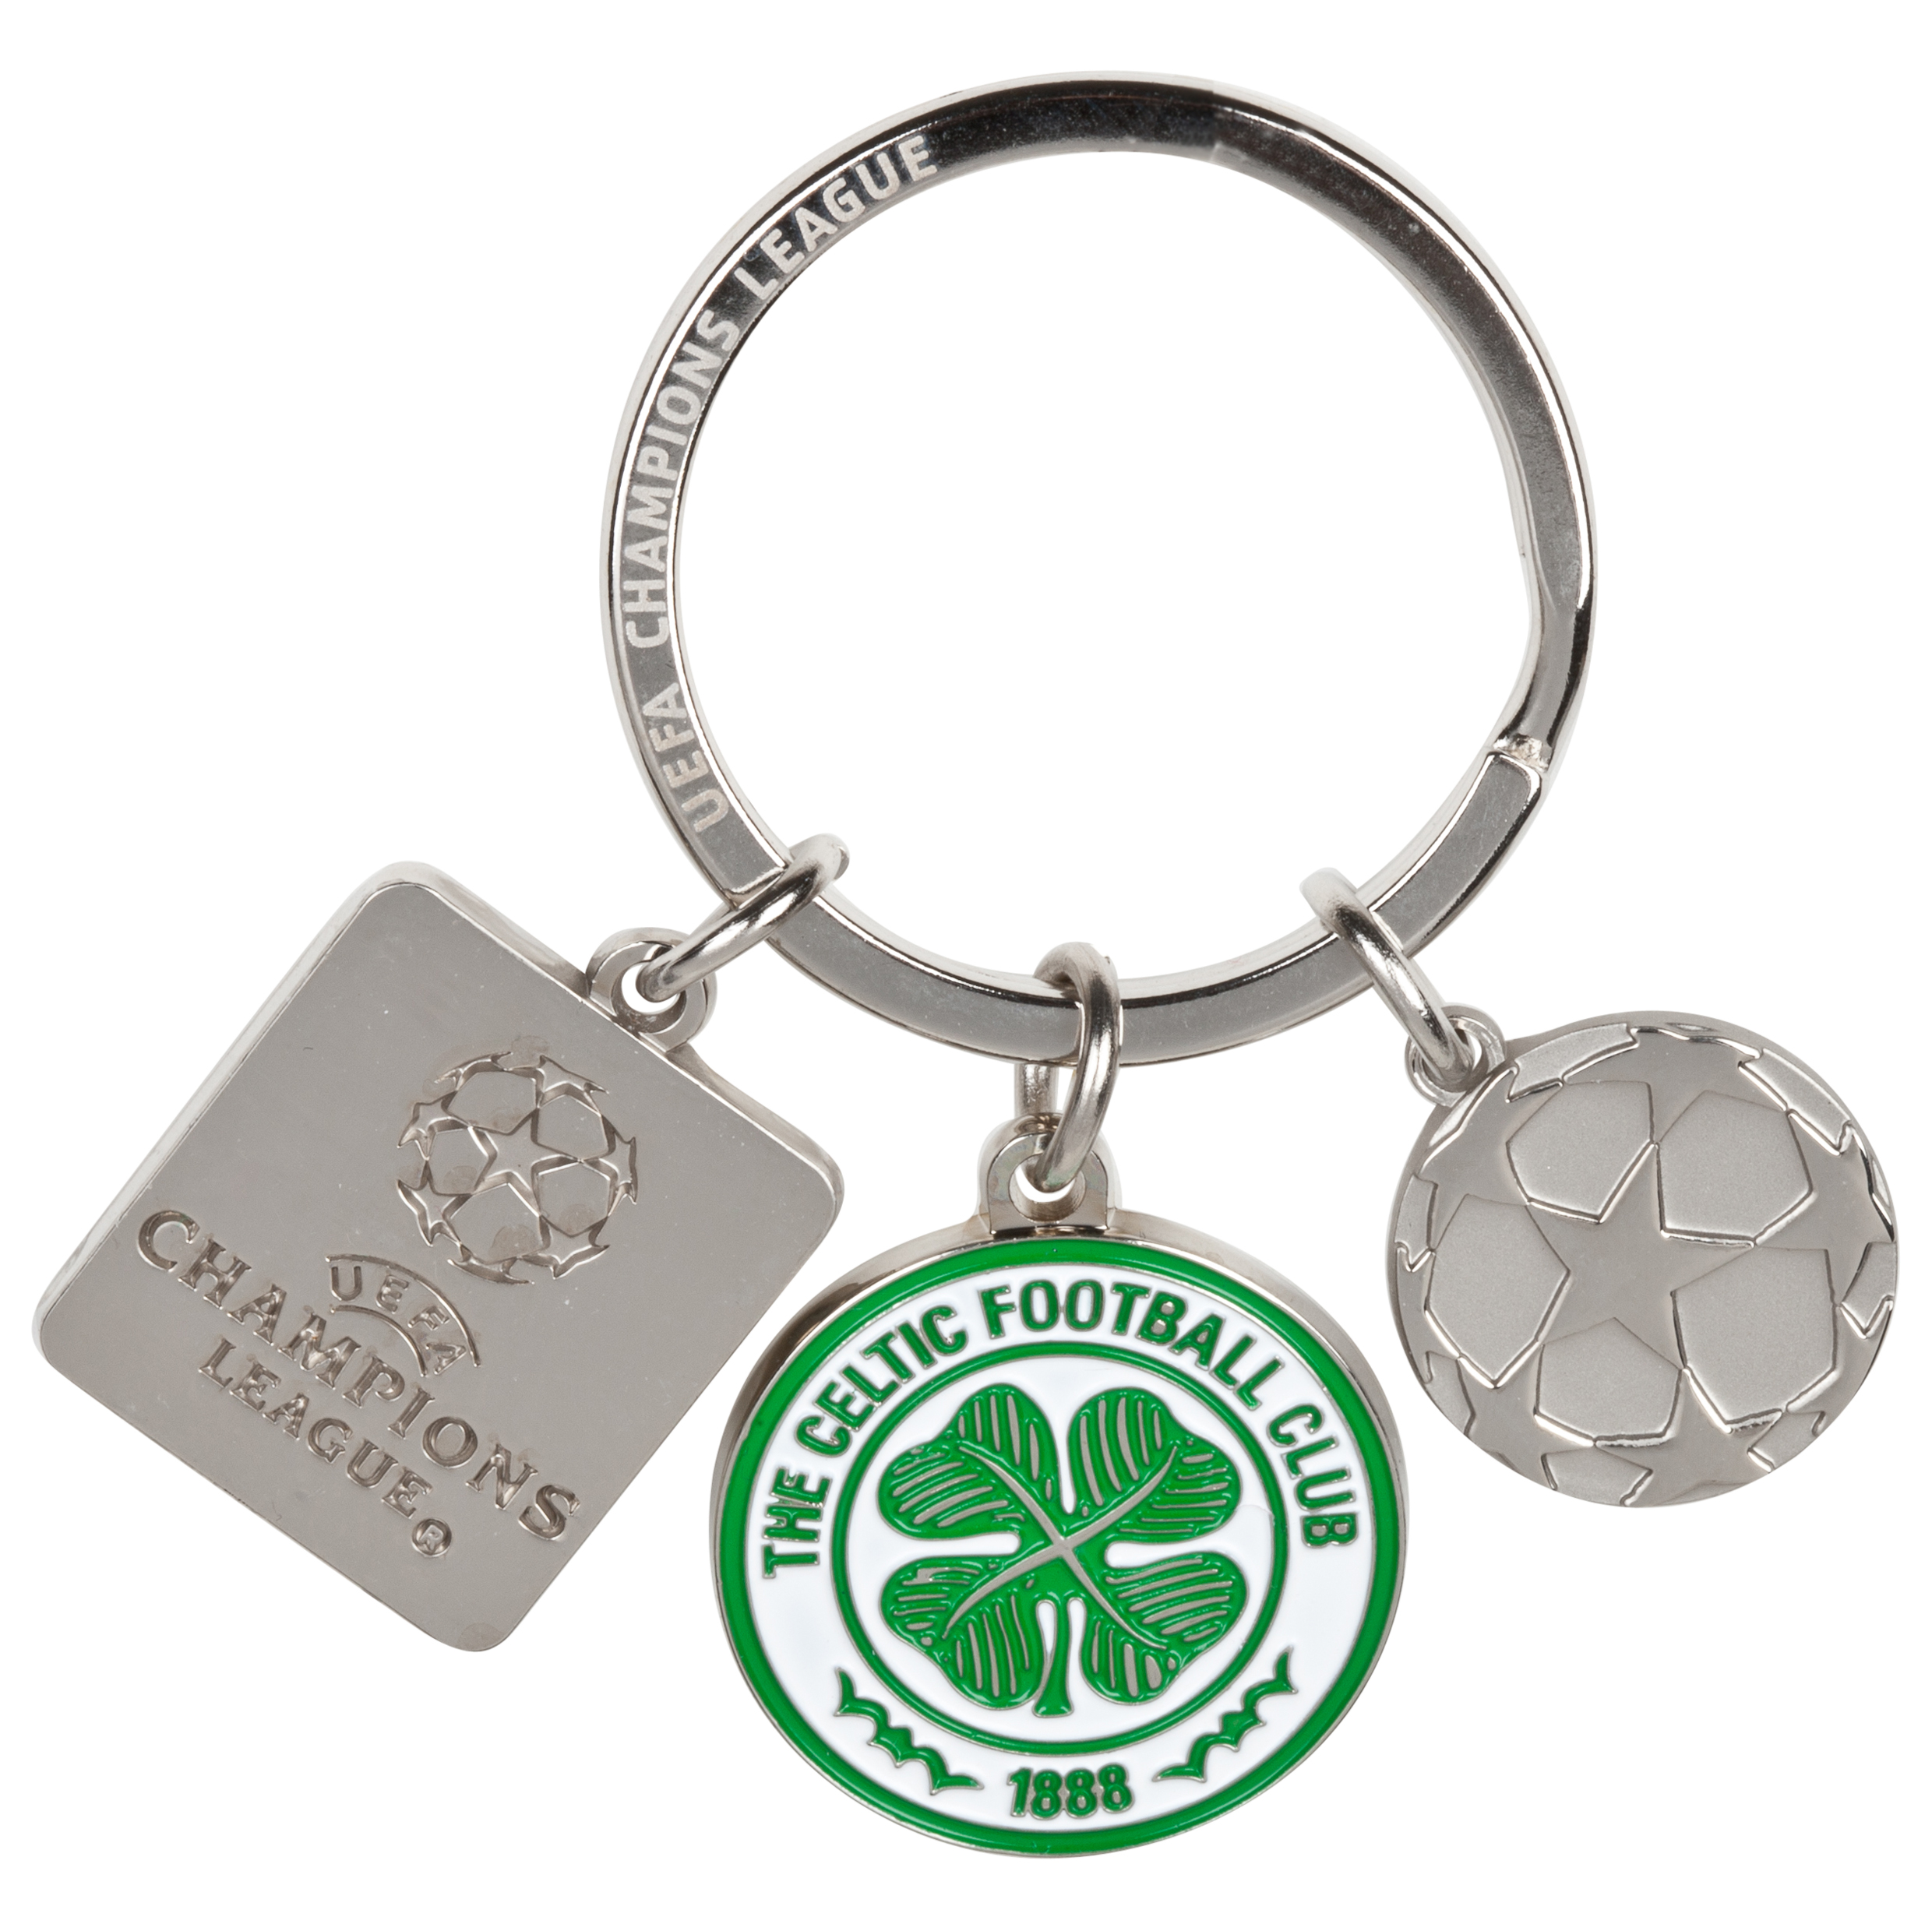 Celtic UEFA Champions League Charm Keyring